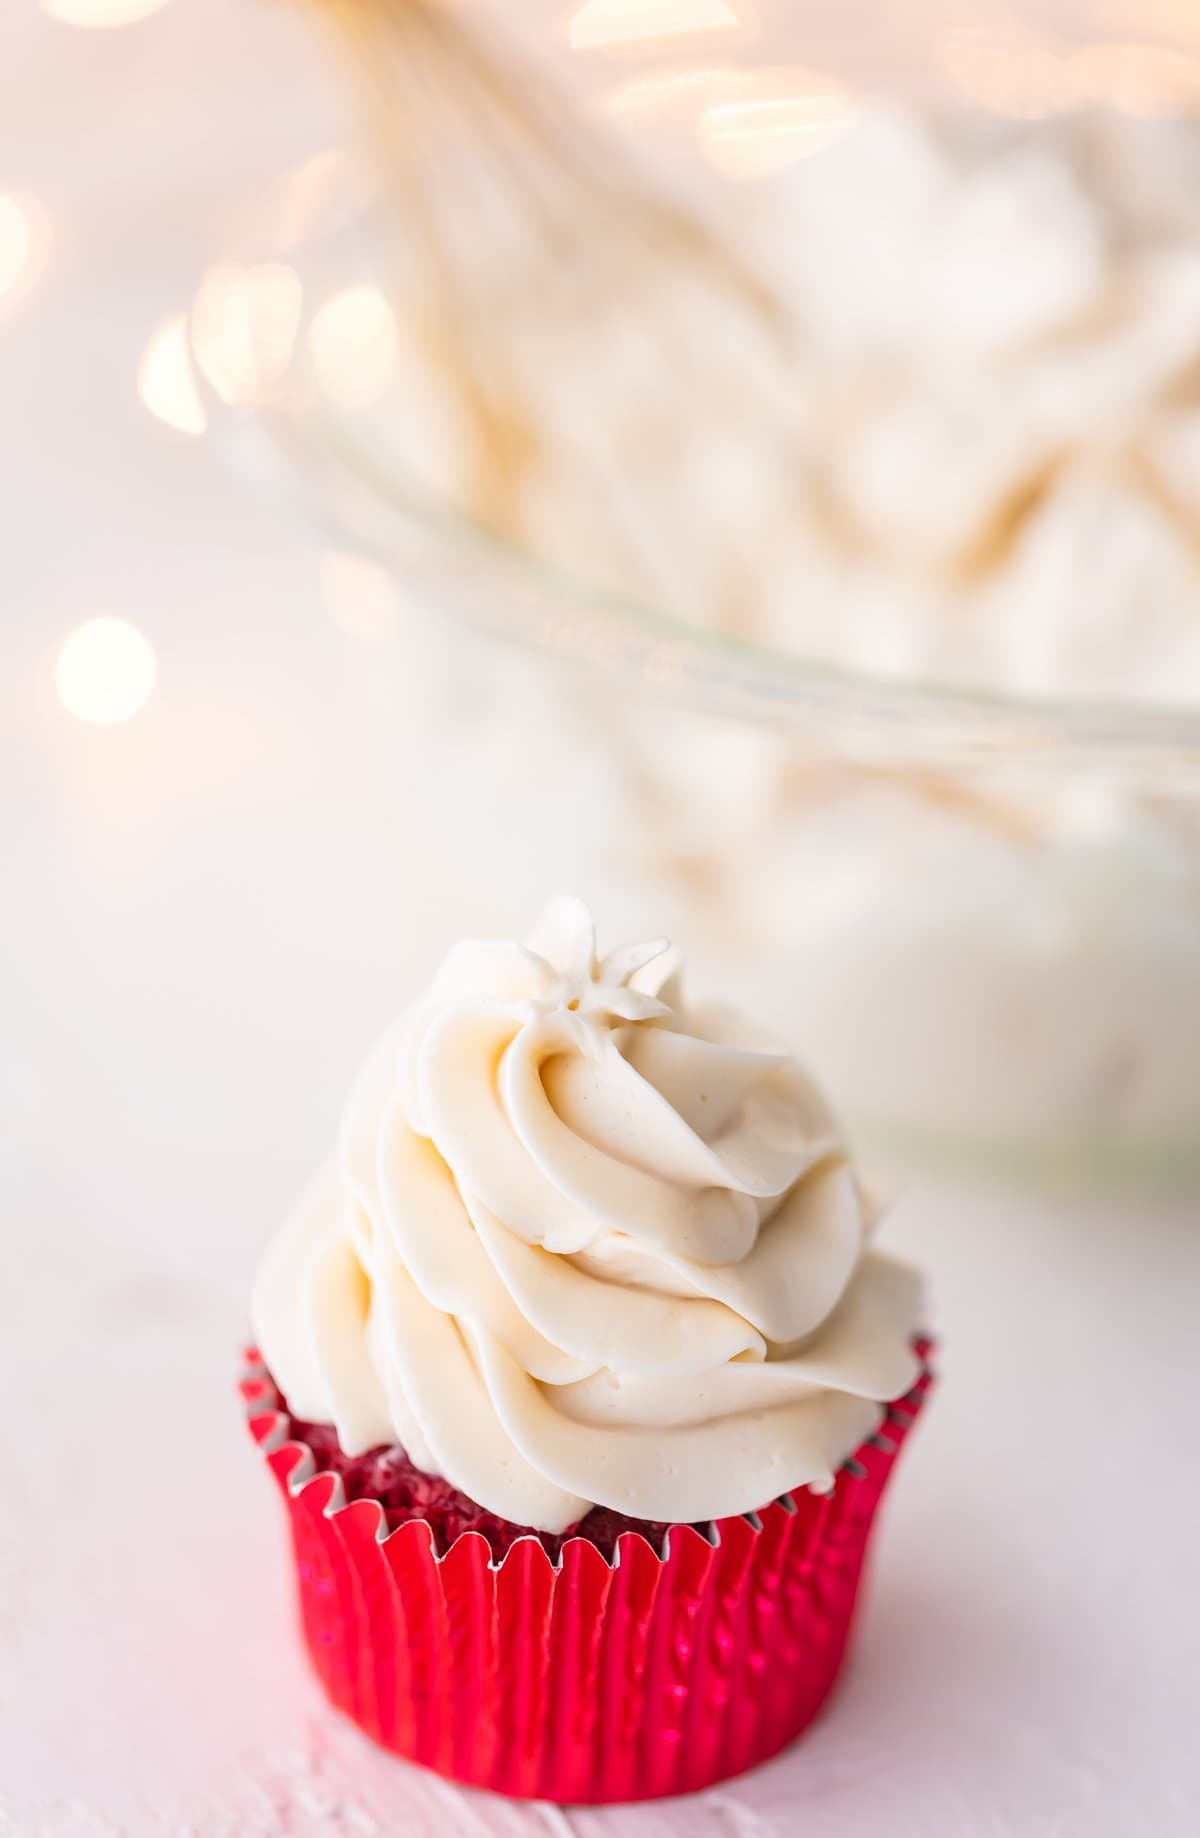 A cupcake topped with icing